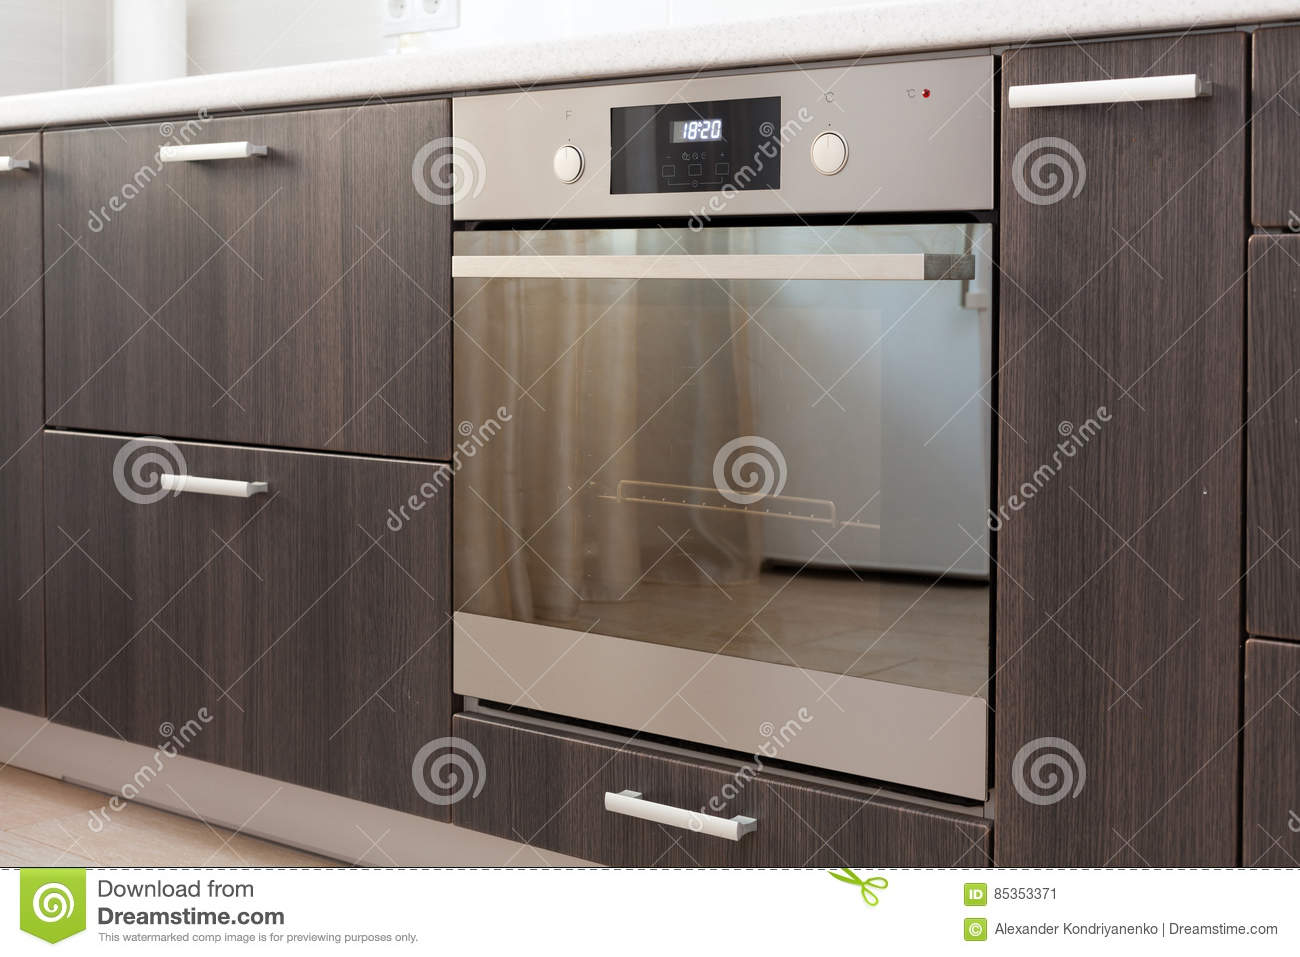 Kitchen cabinets with metal handles and built-in electric oven.